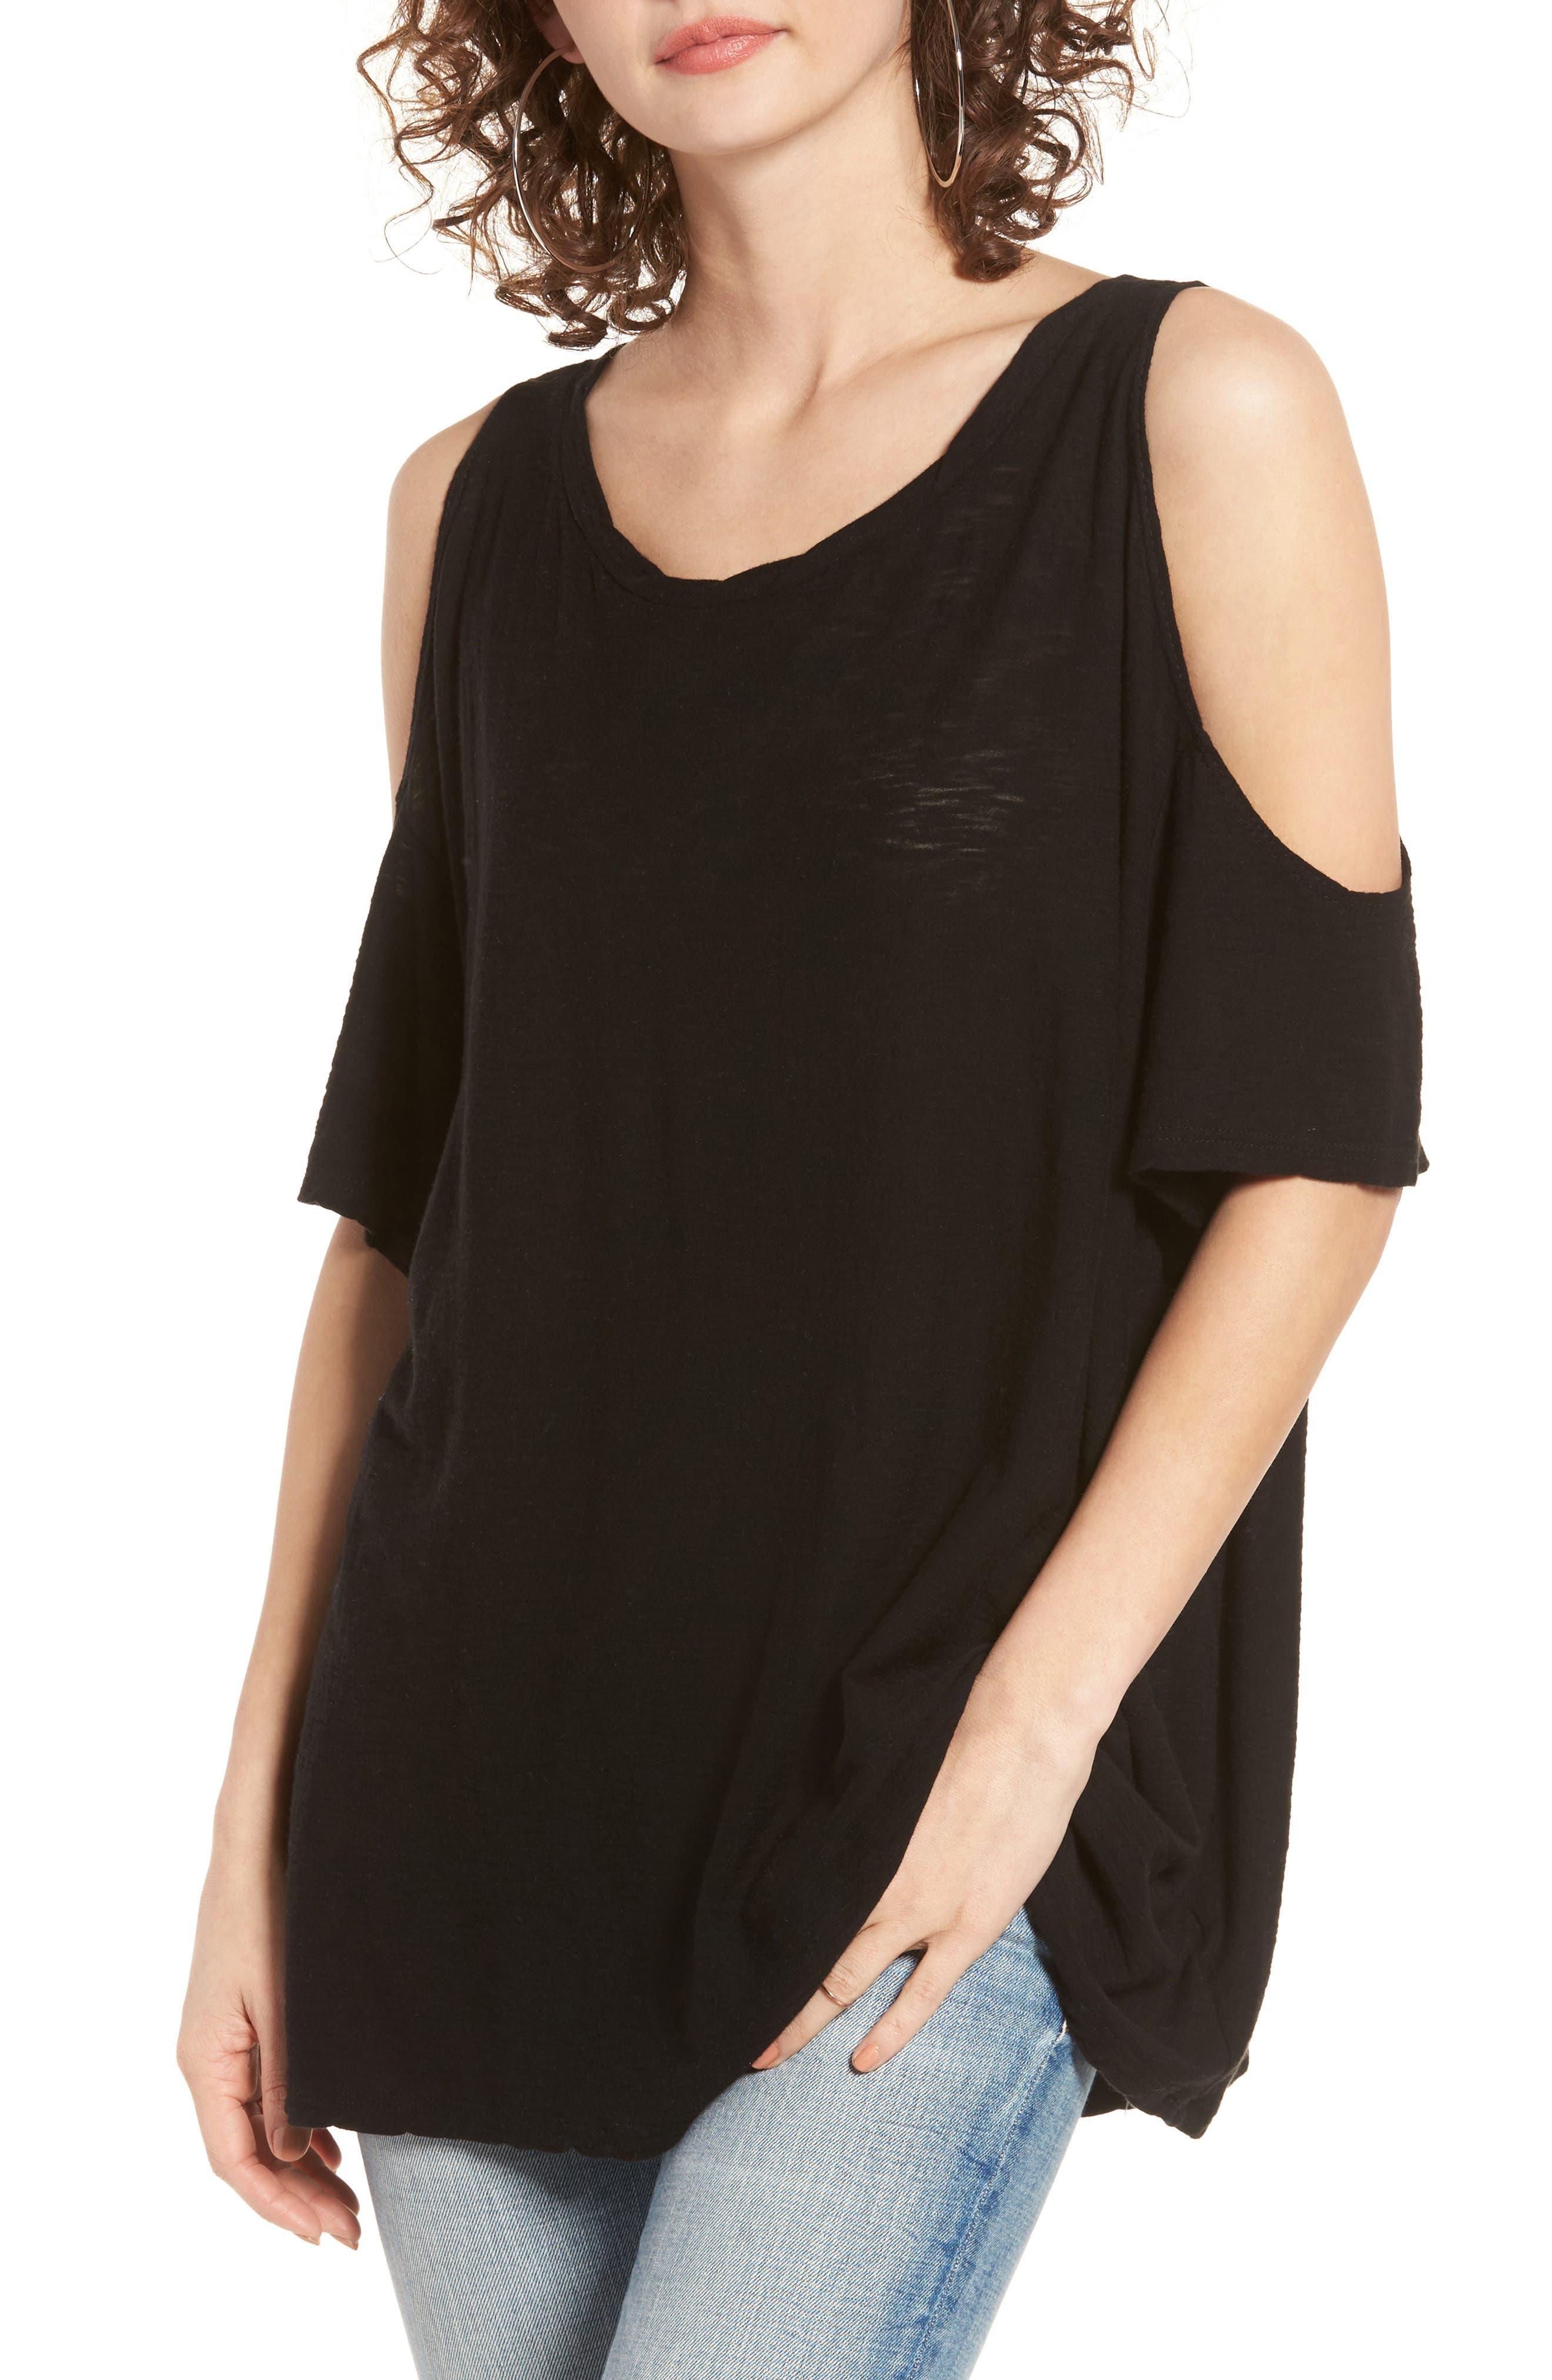 Main Image - Michelle by Comune Frisco Cold Shoulder Tee